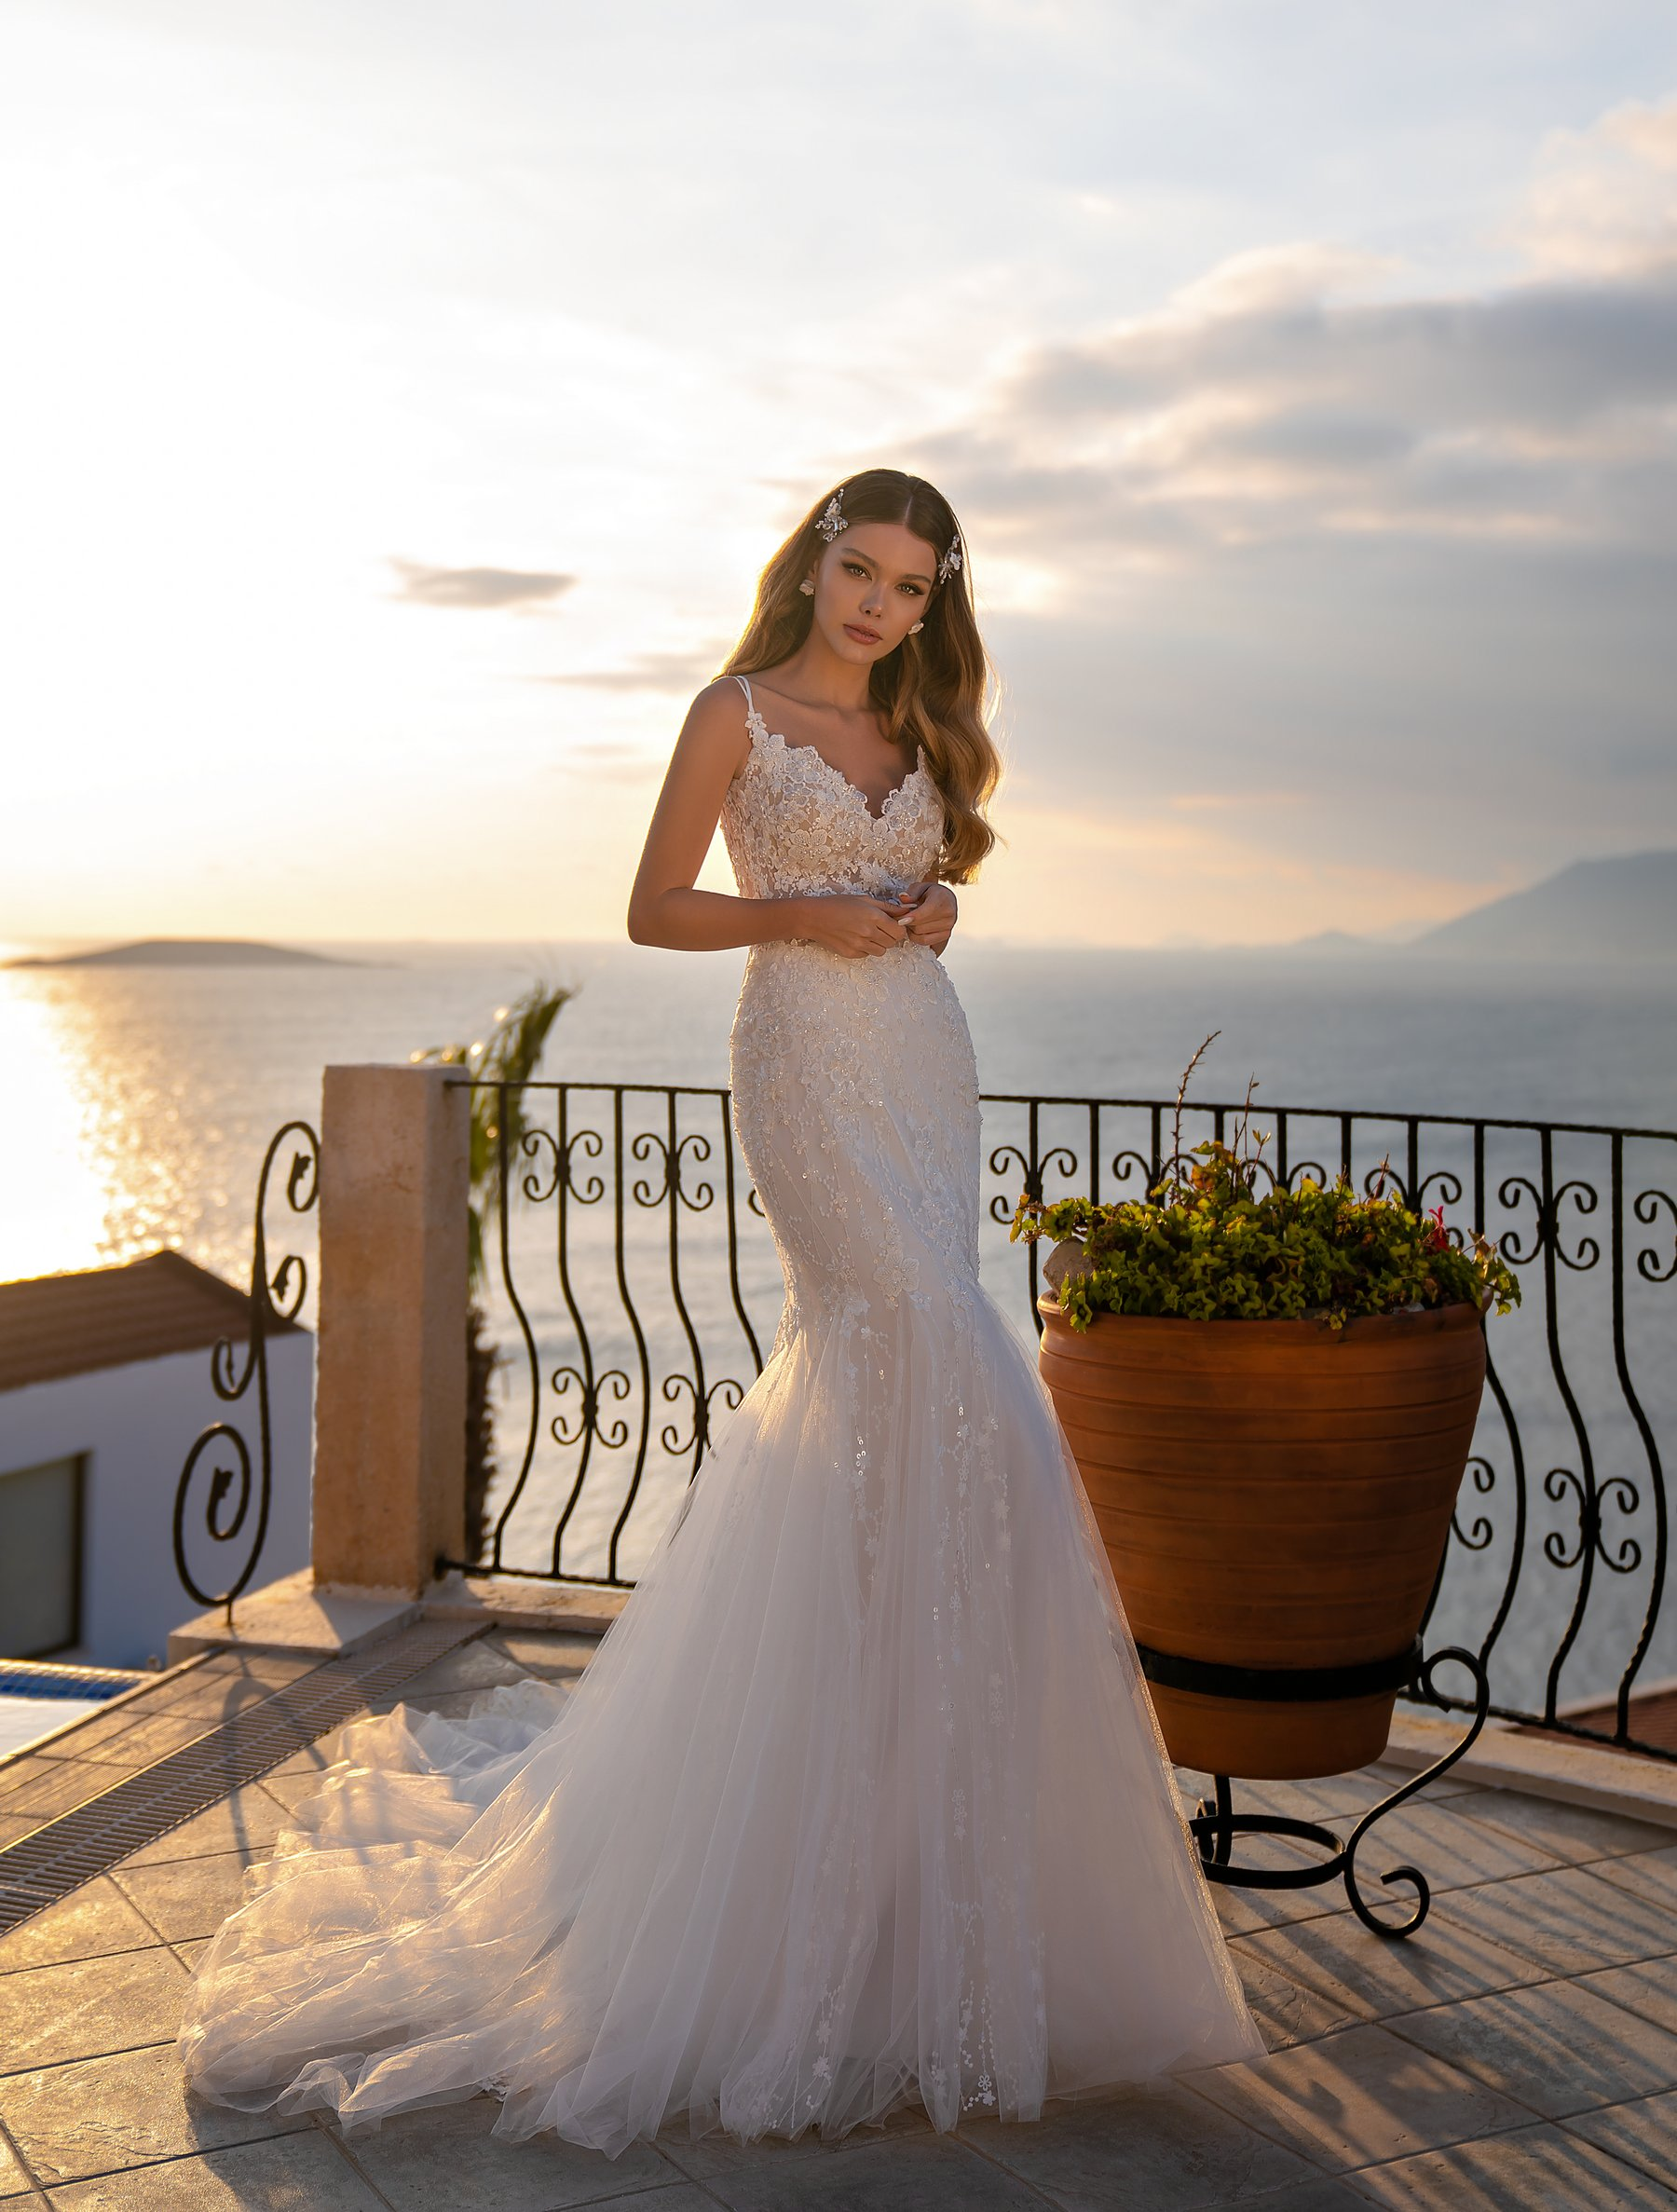 Wholesale wedding dress with detachable train from Supernova-1